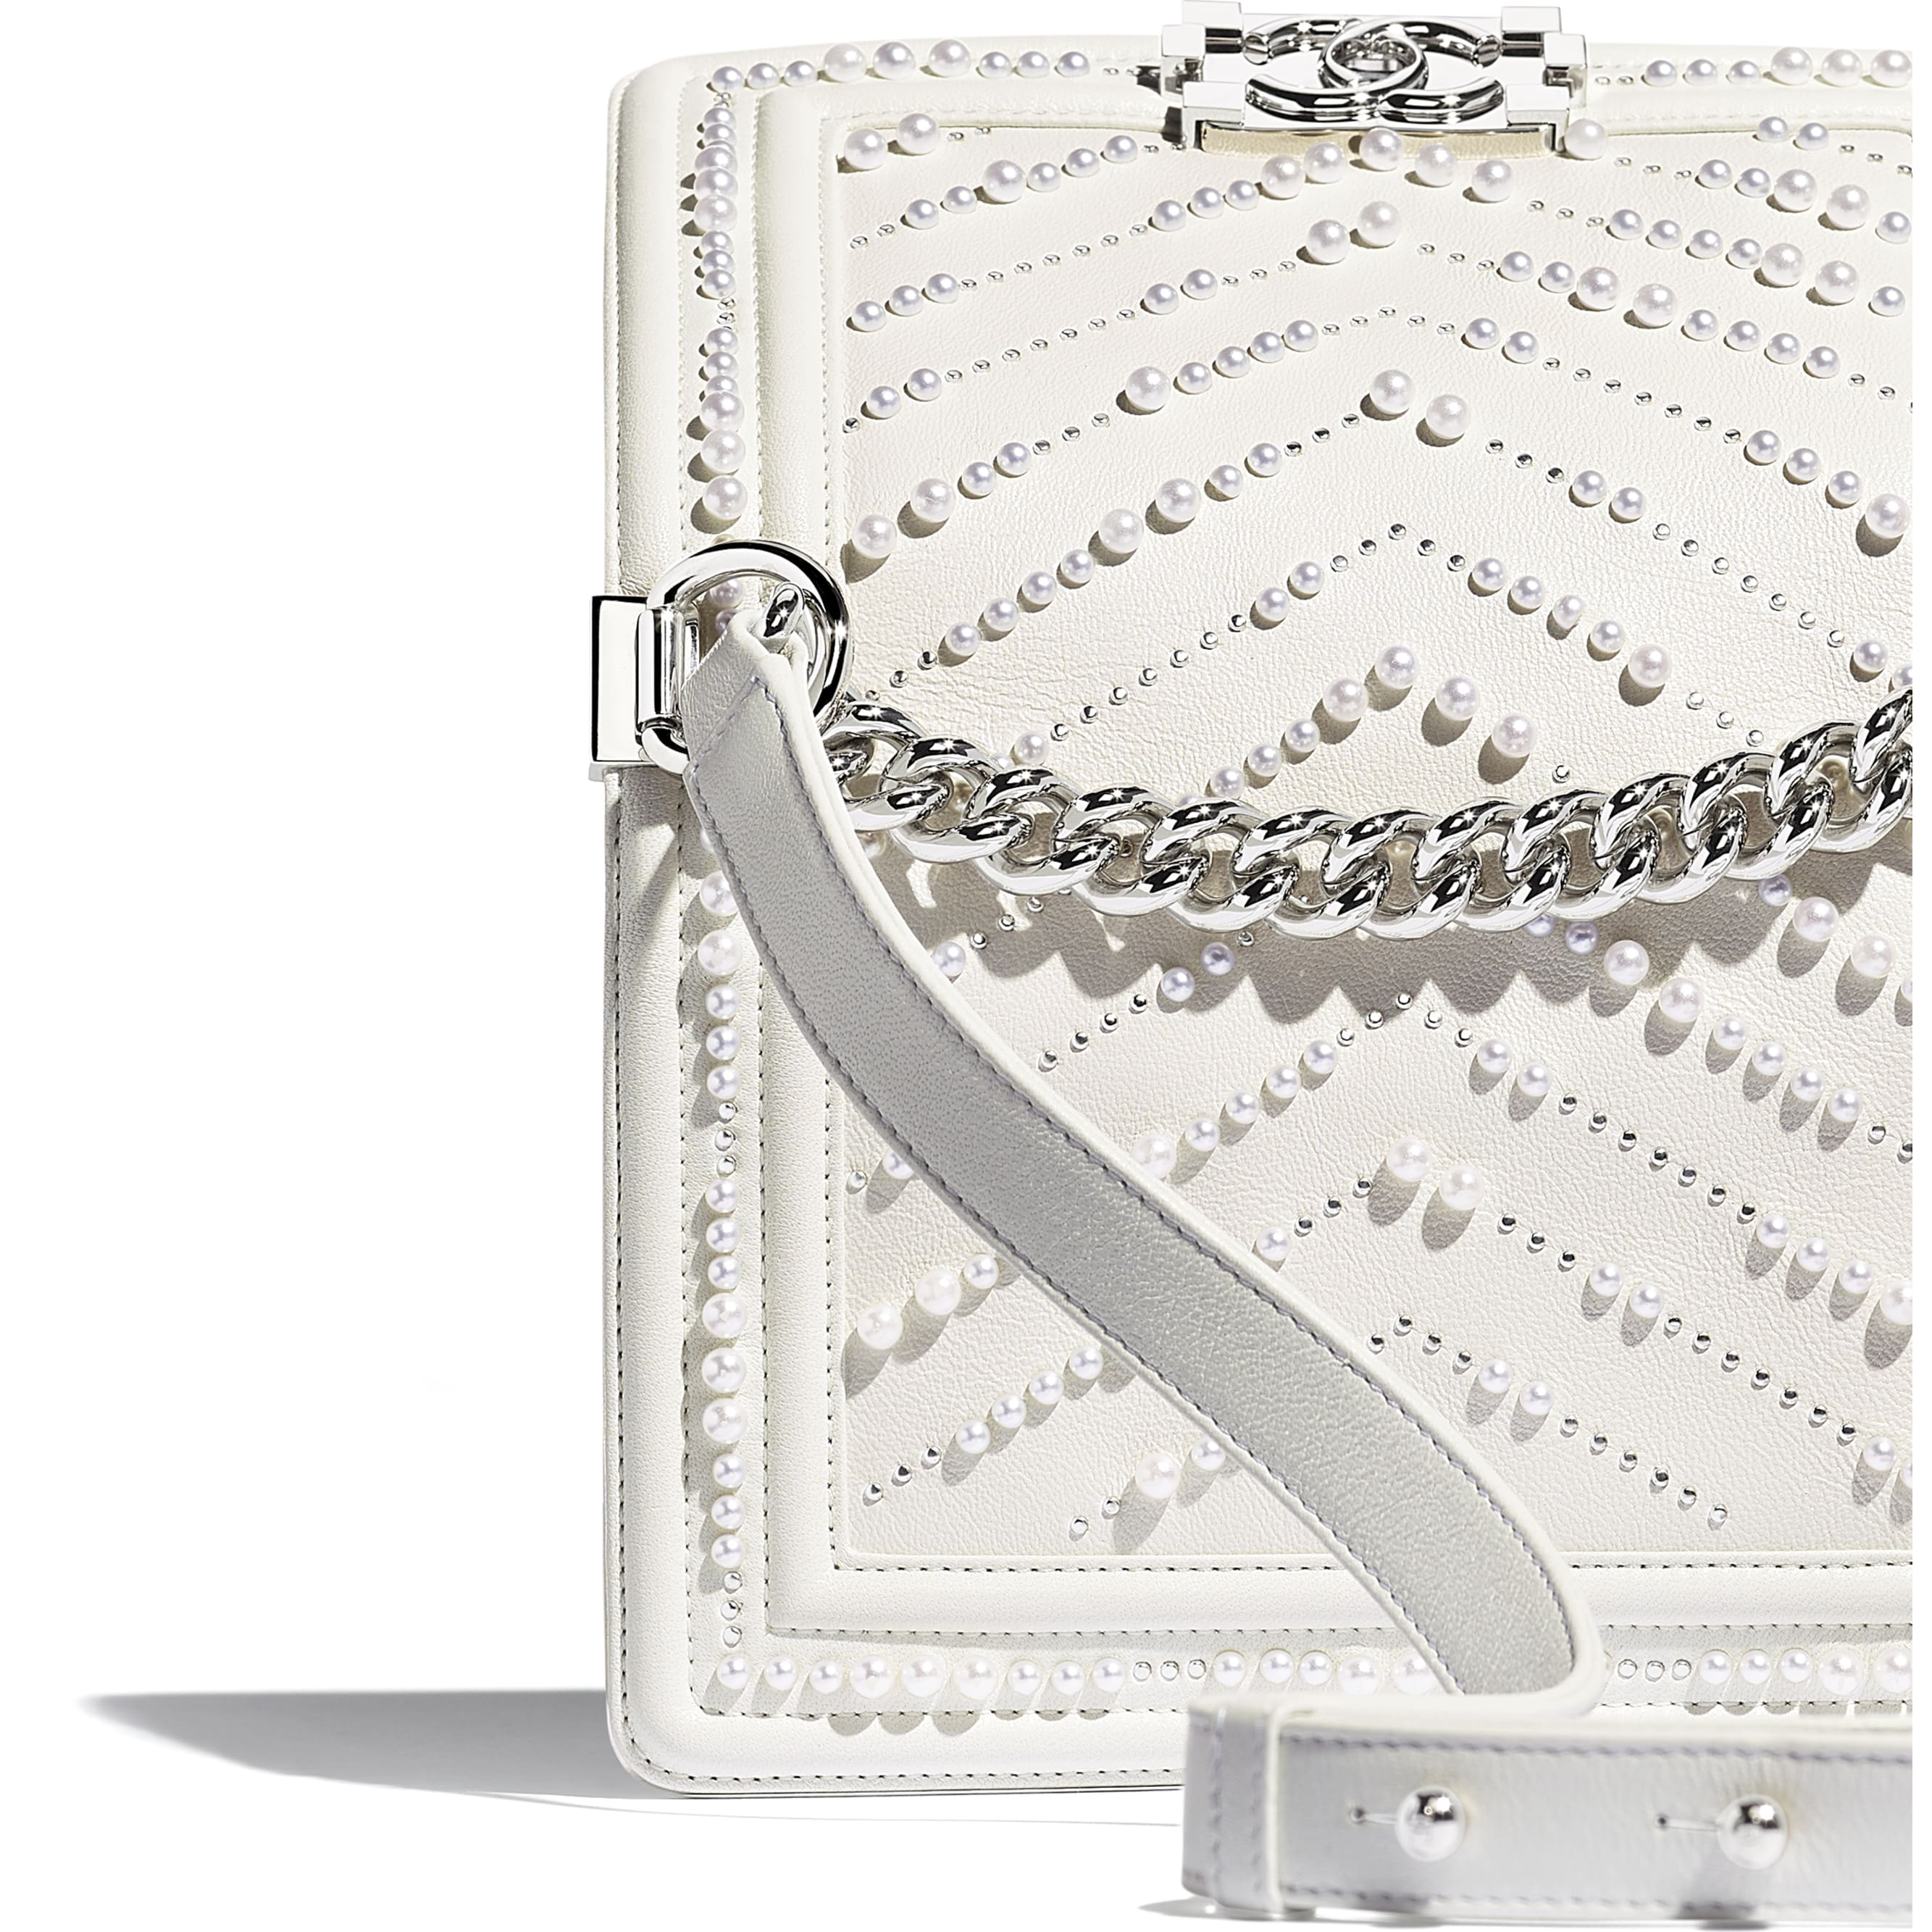 Small BOY CHANEL Handbag - White - Calfskin, Imitation Pearls & Silver-Tone Metal - Extra view - see standard sized version